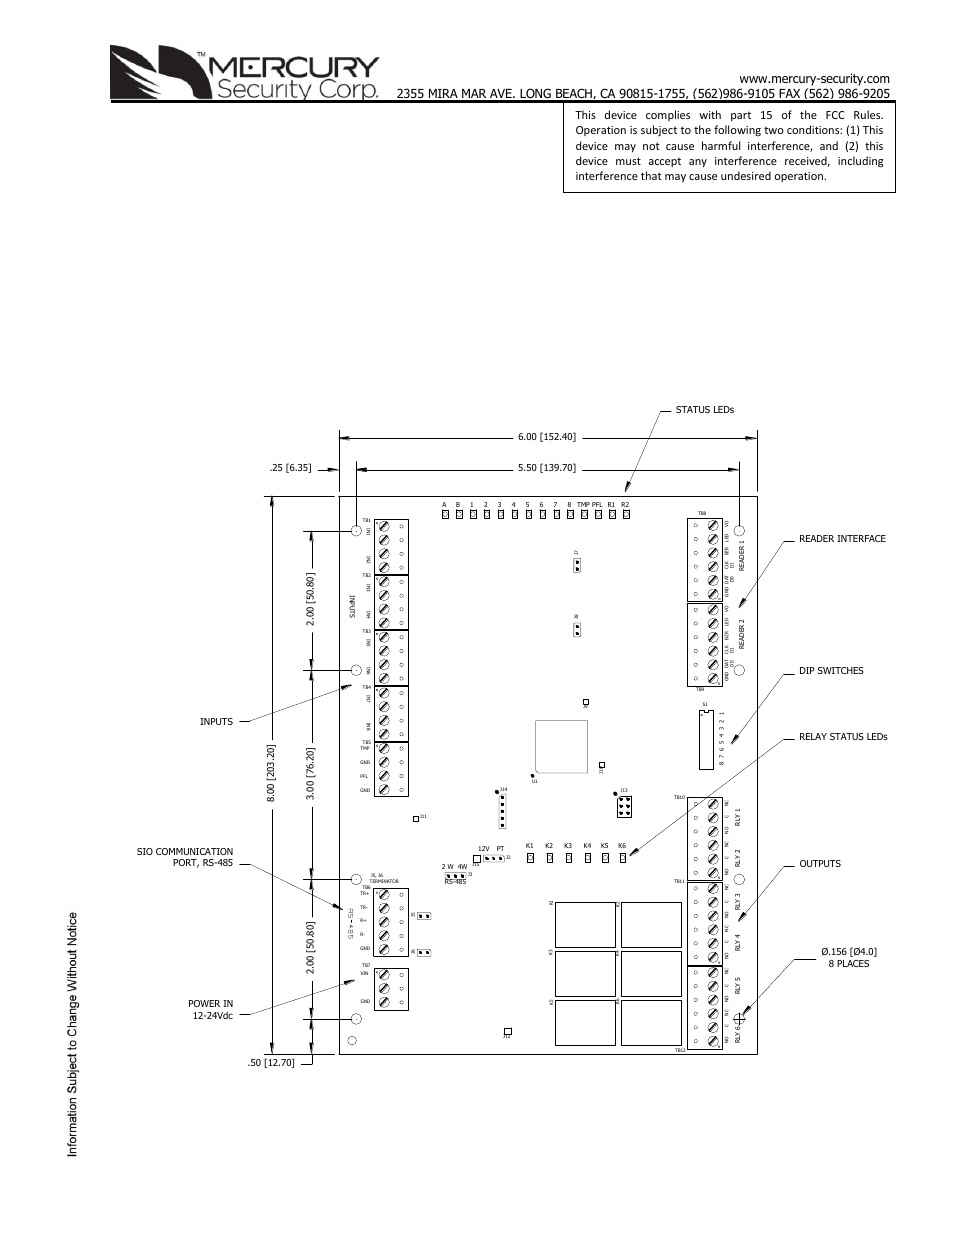 Keri Systems Mr52 User Manual